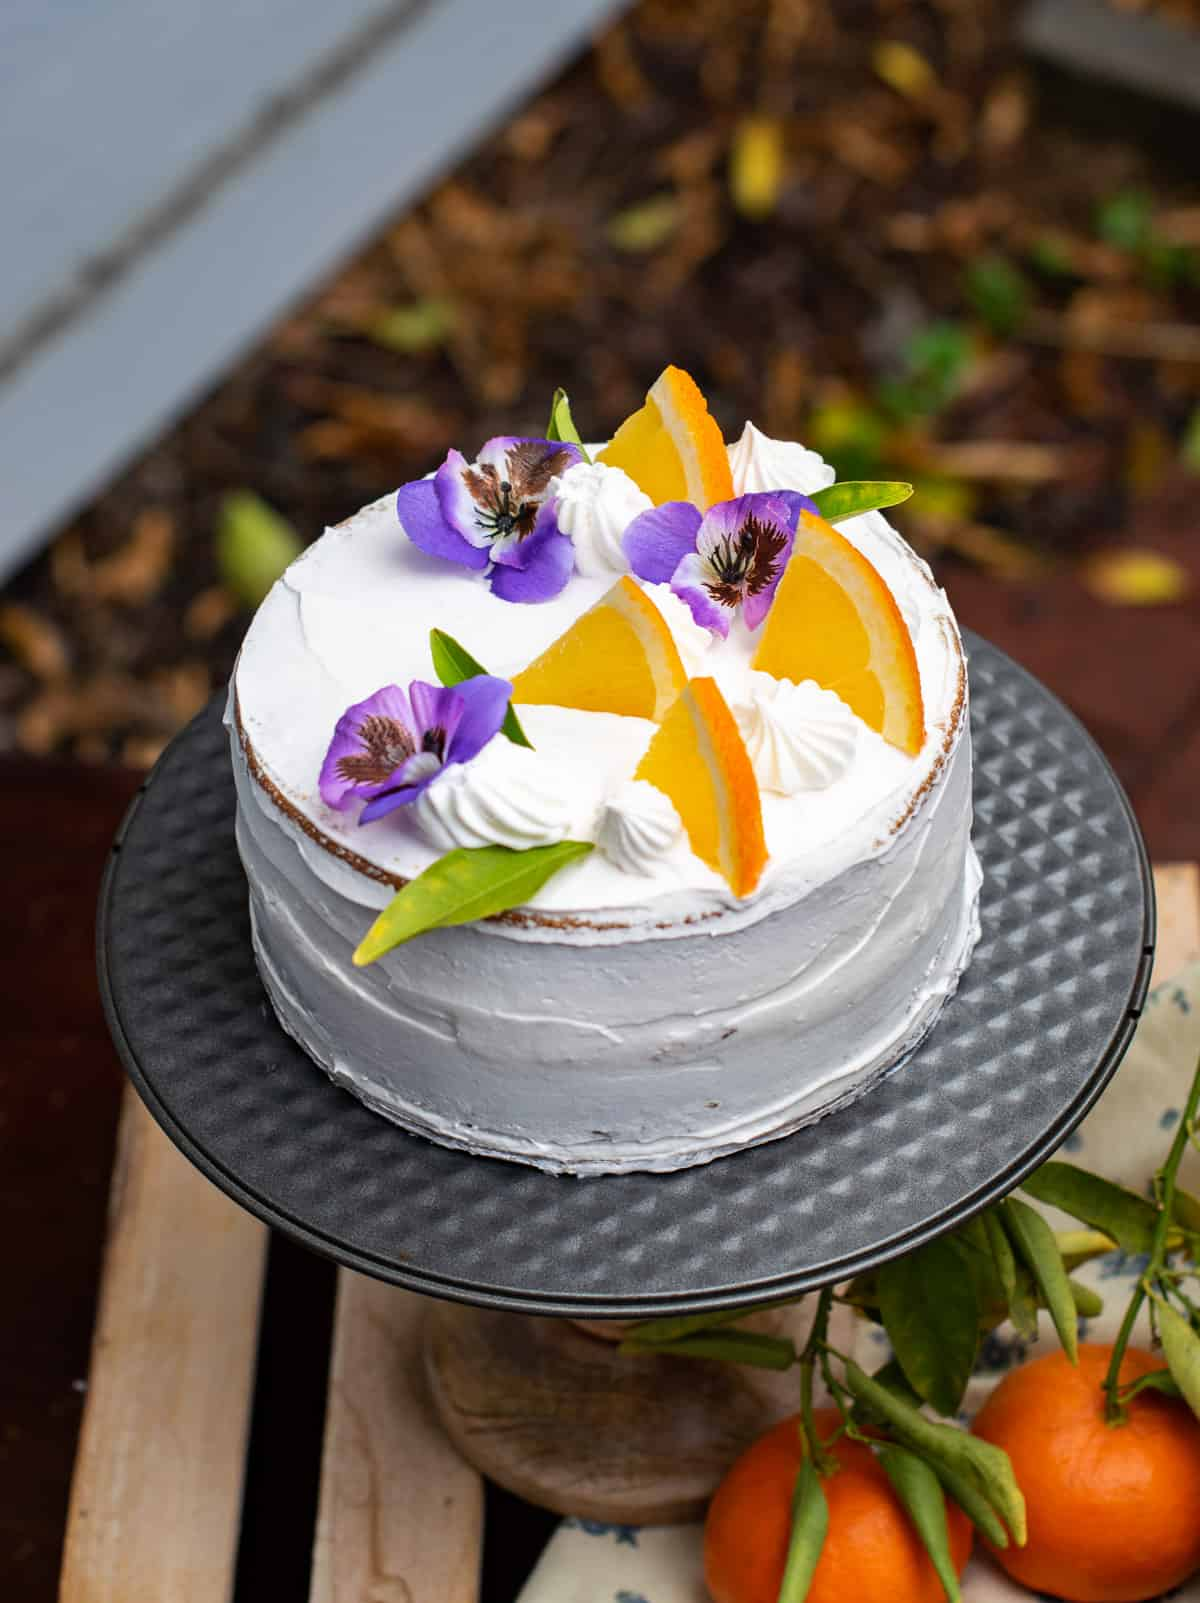 Frosted orange cake decorated with flowers